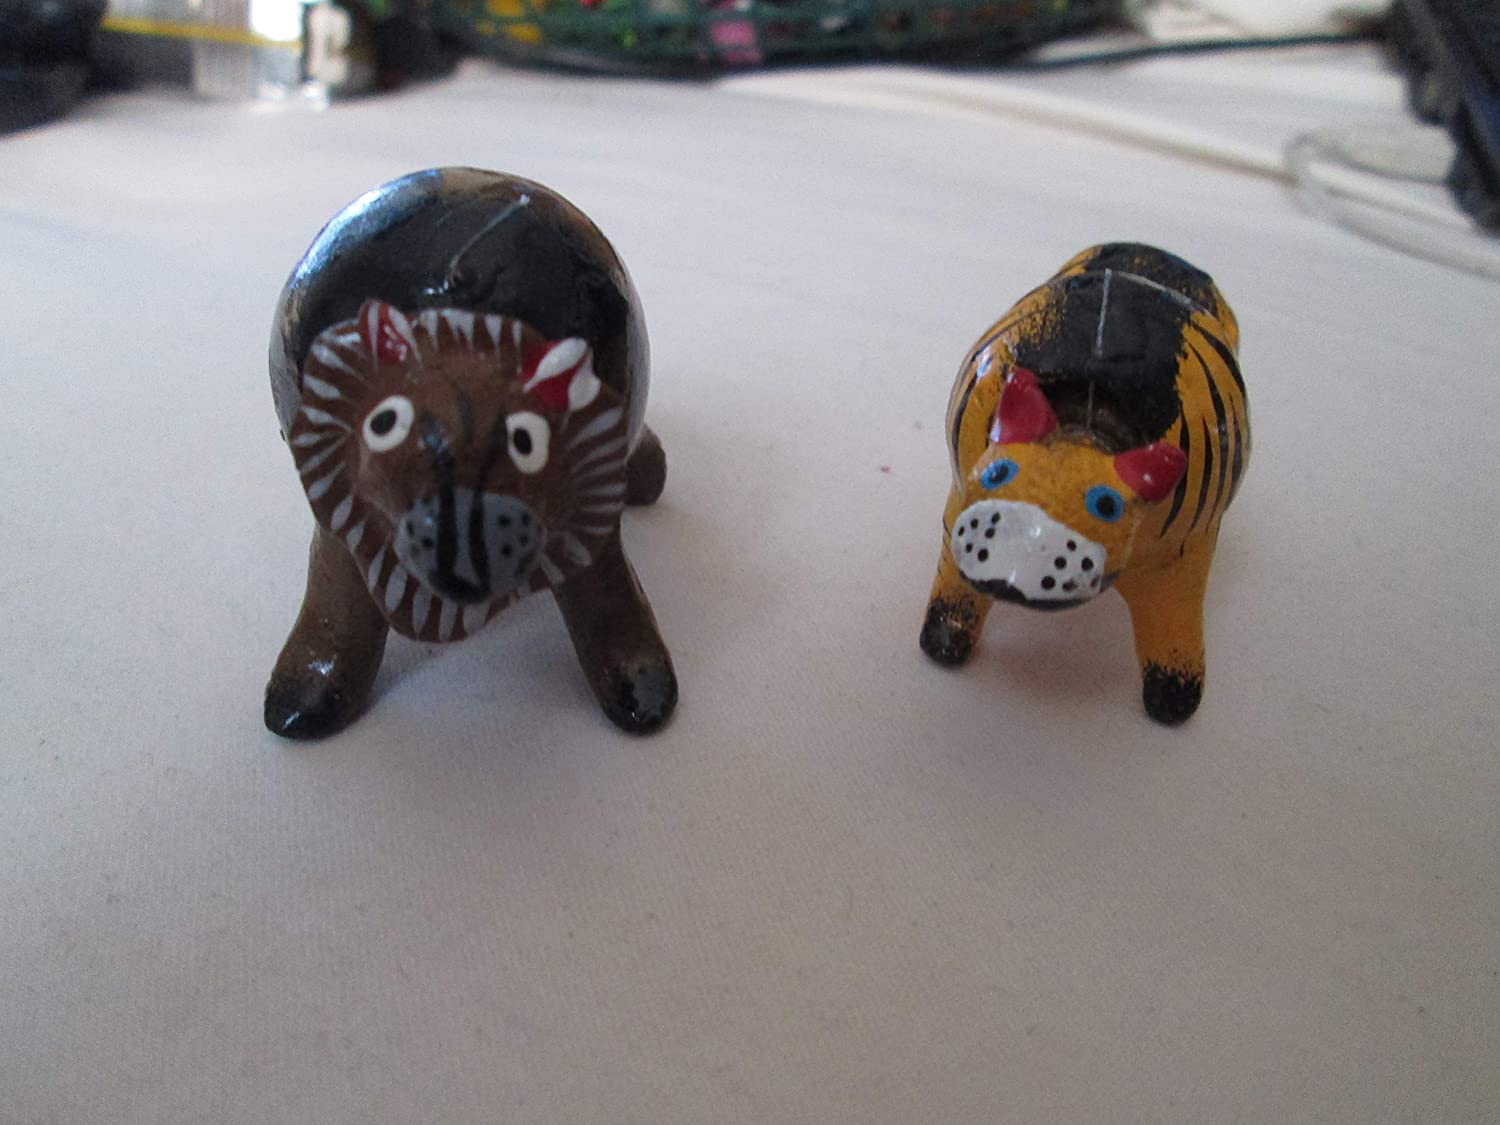 Lot 2 Pair Lion And Tiger Animal Bobble Head Loose Neck Figurine Seed Pod Figure Hand Painted Handmade Toy Toys Games Dolls Toy Figures Accessories